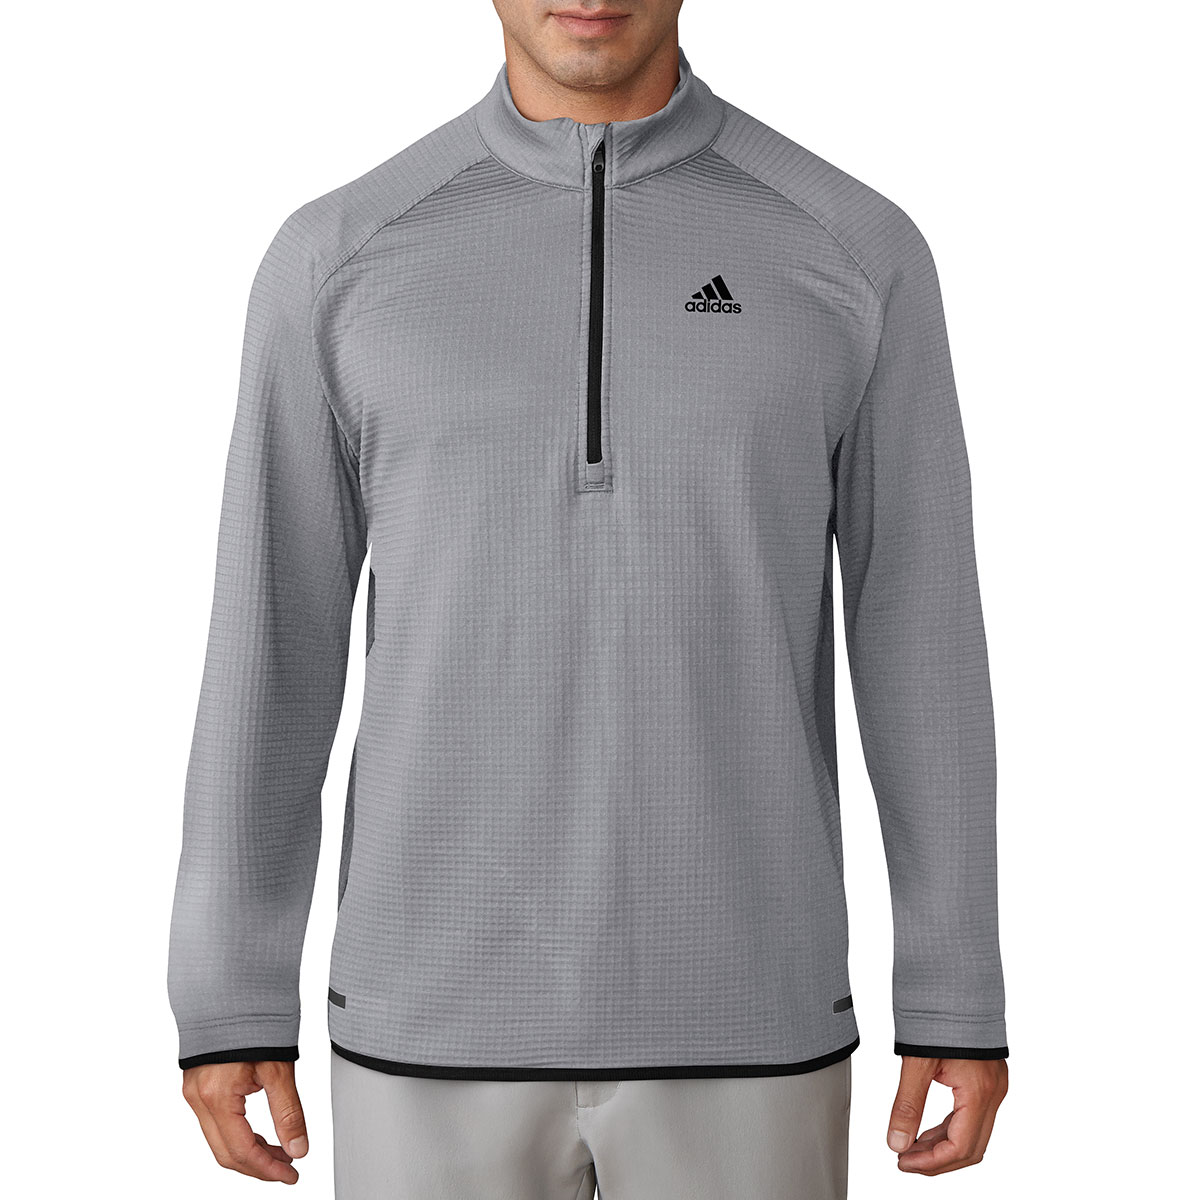 Adidas-Golf-Mens-2017-Climaheat-Gridded-1-4-Zip-Super-Warm-Pullover-Sweater